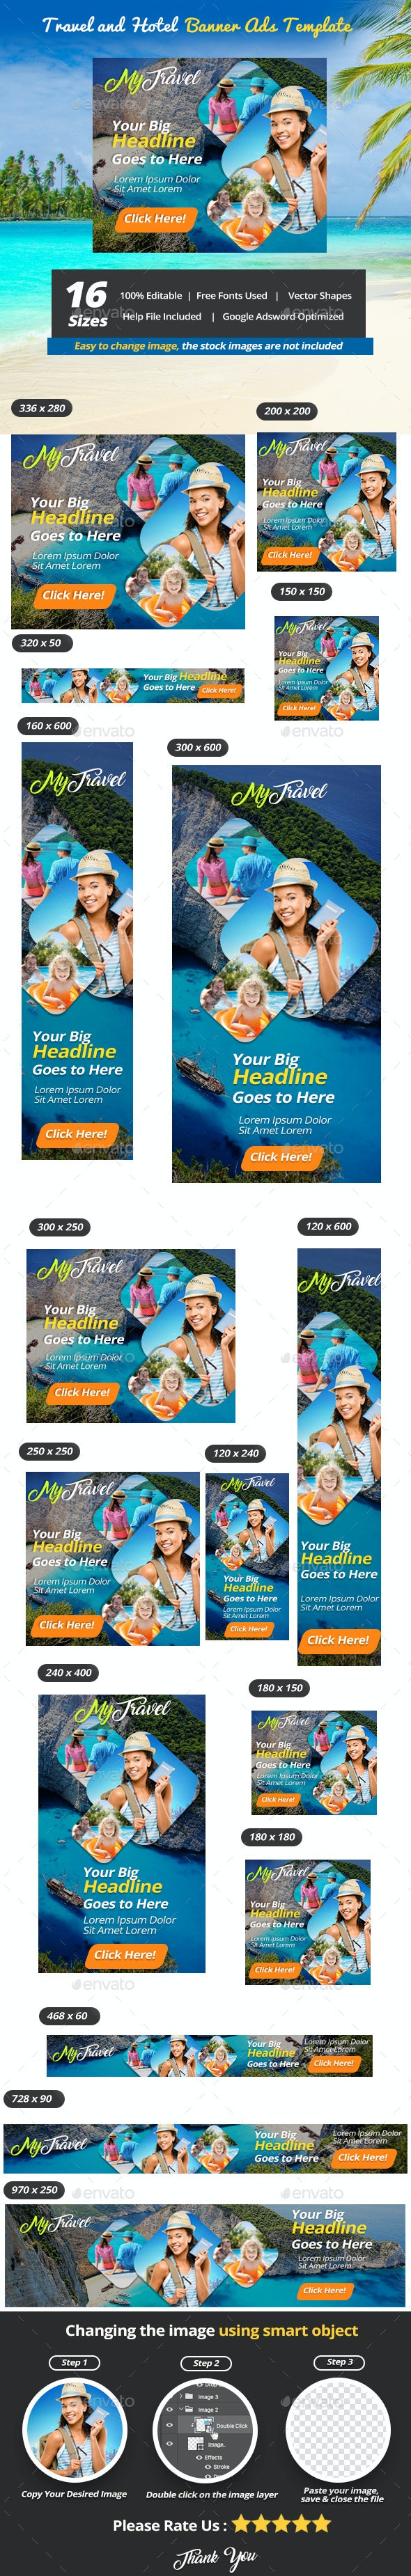 Travel and Hotel Banner Ads Template - Banners & Ads Web Elements